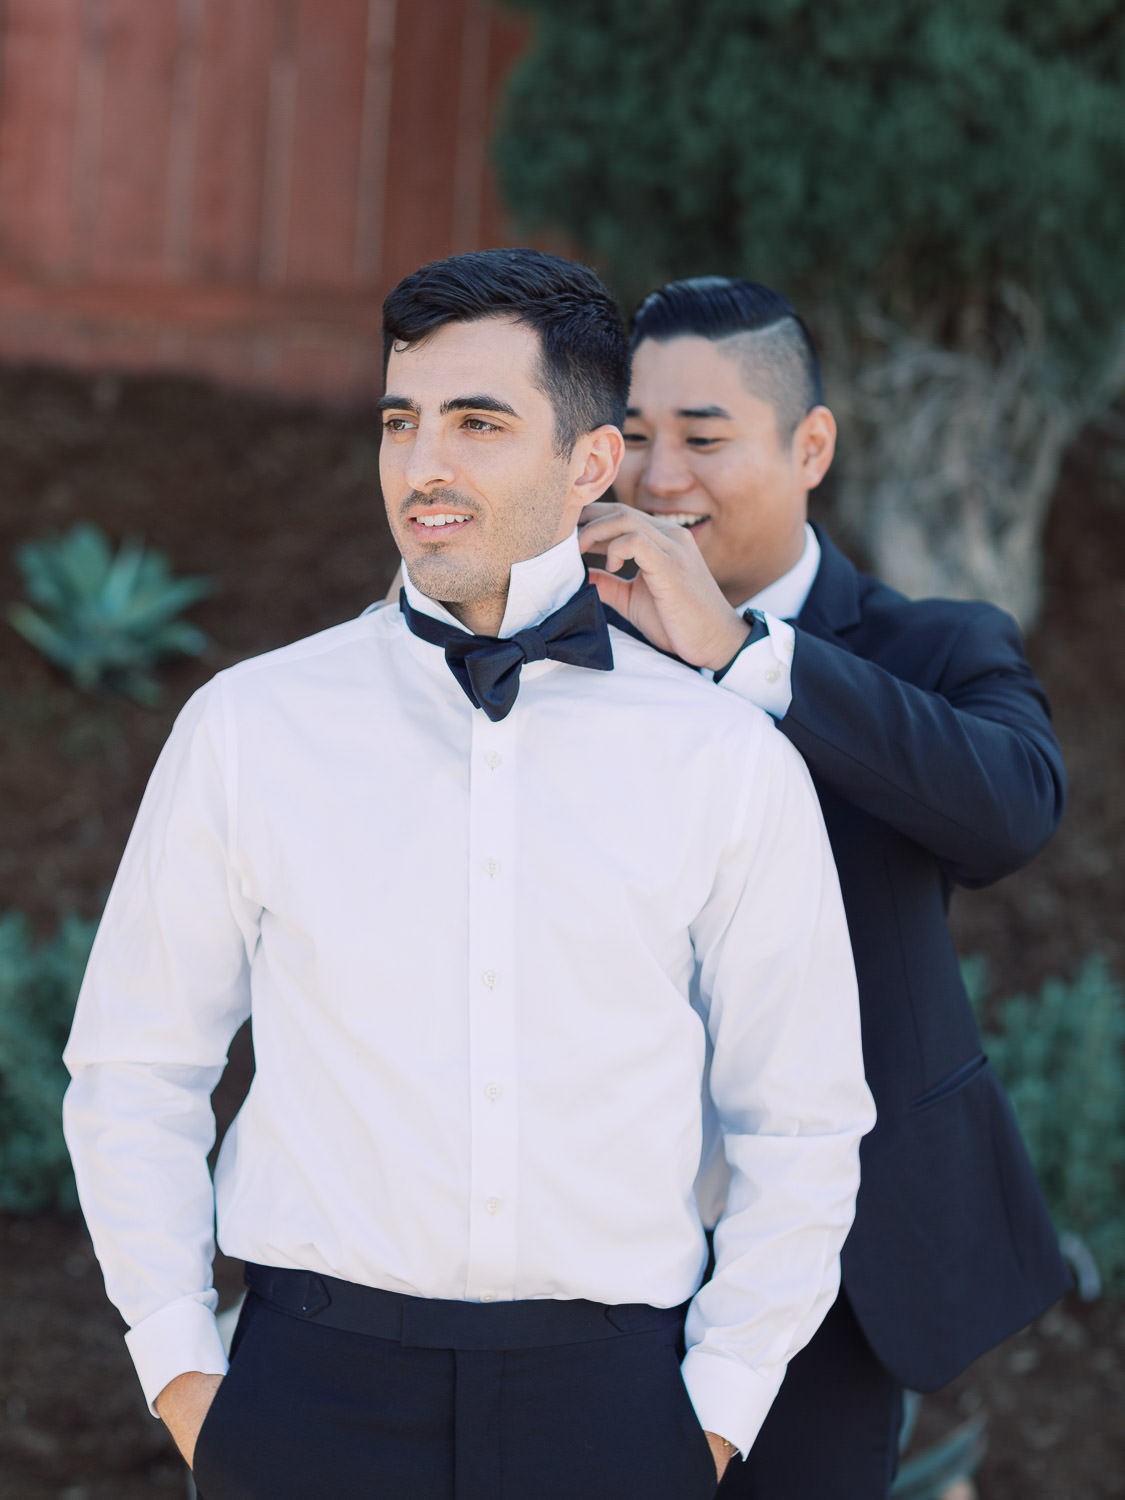 Groom-Getting-Ready